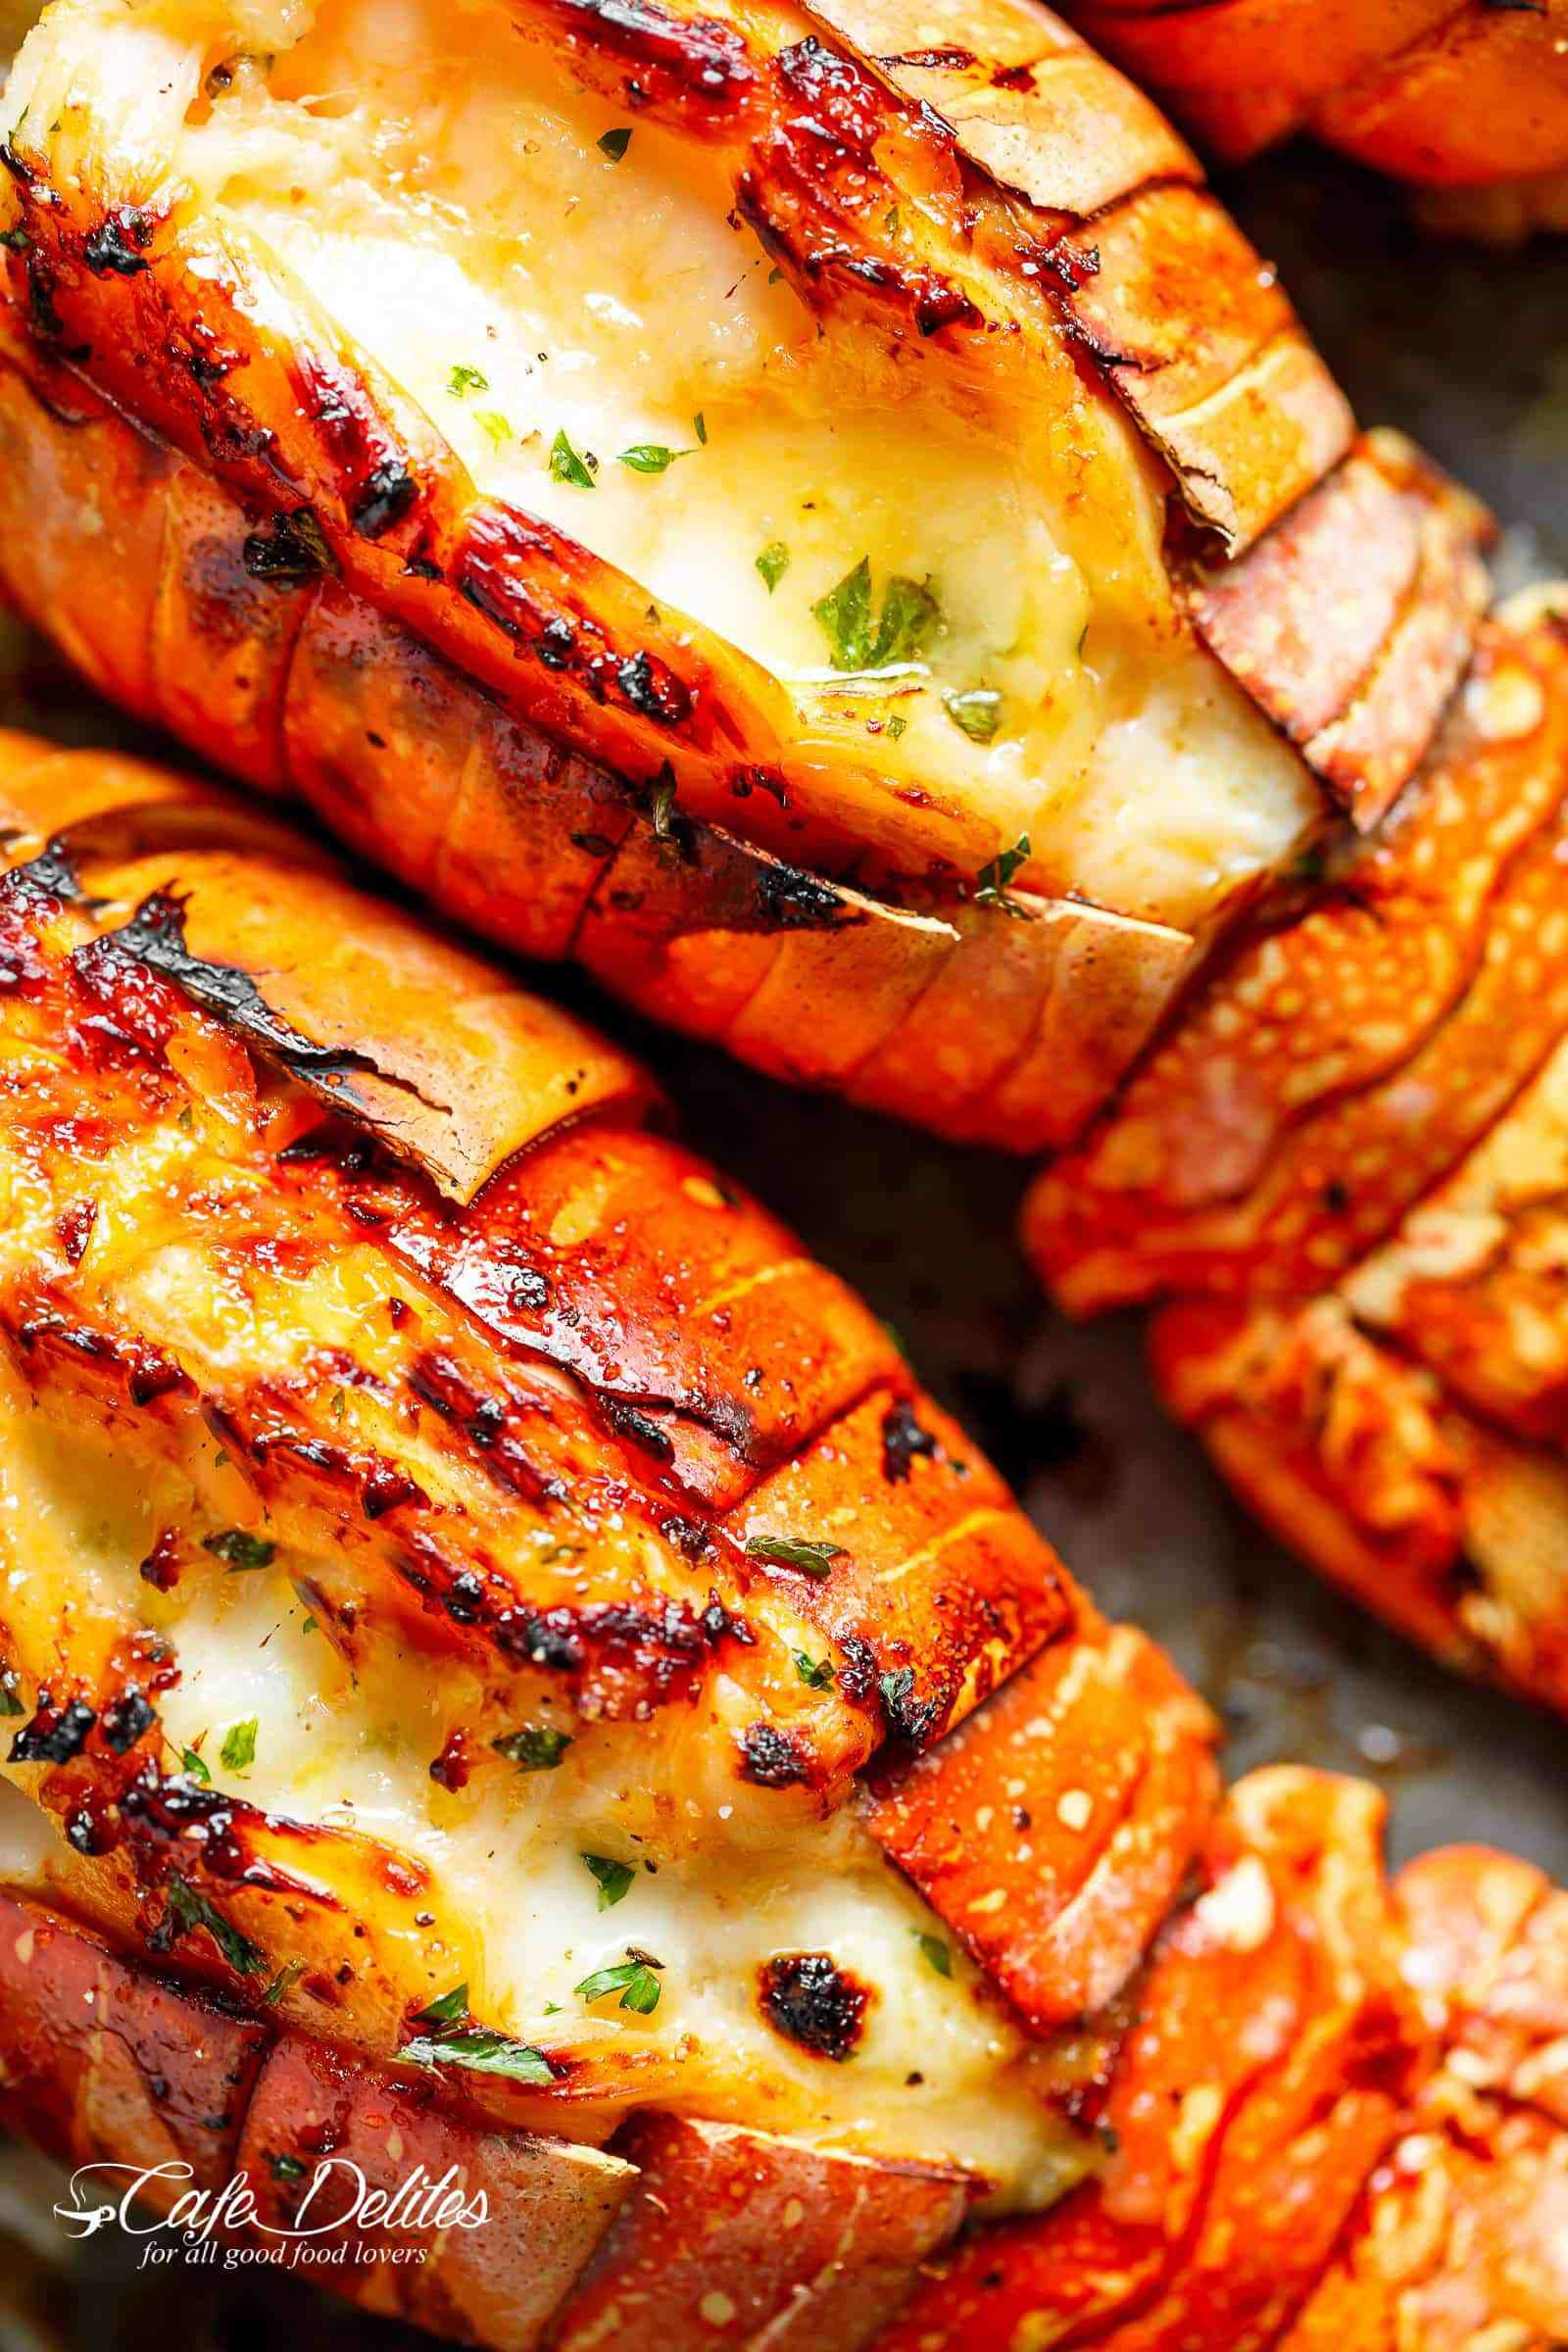 Broiled Lobster Tails With Honey Garlic Butter White Wine Sauce Cafedelites Com Lobster Recipes Tail Lobster Recipes Steak And Lobster Dinner